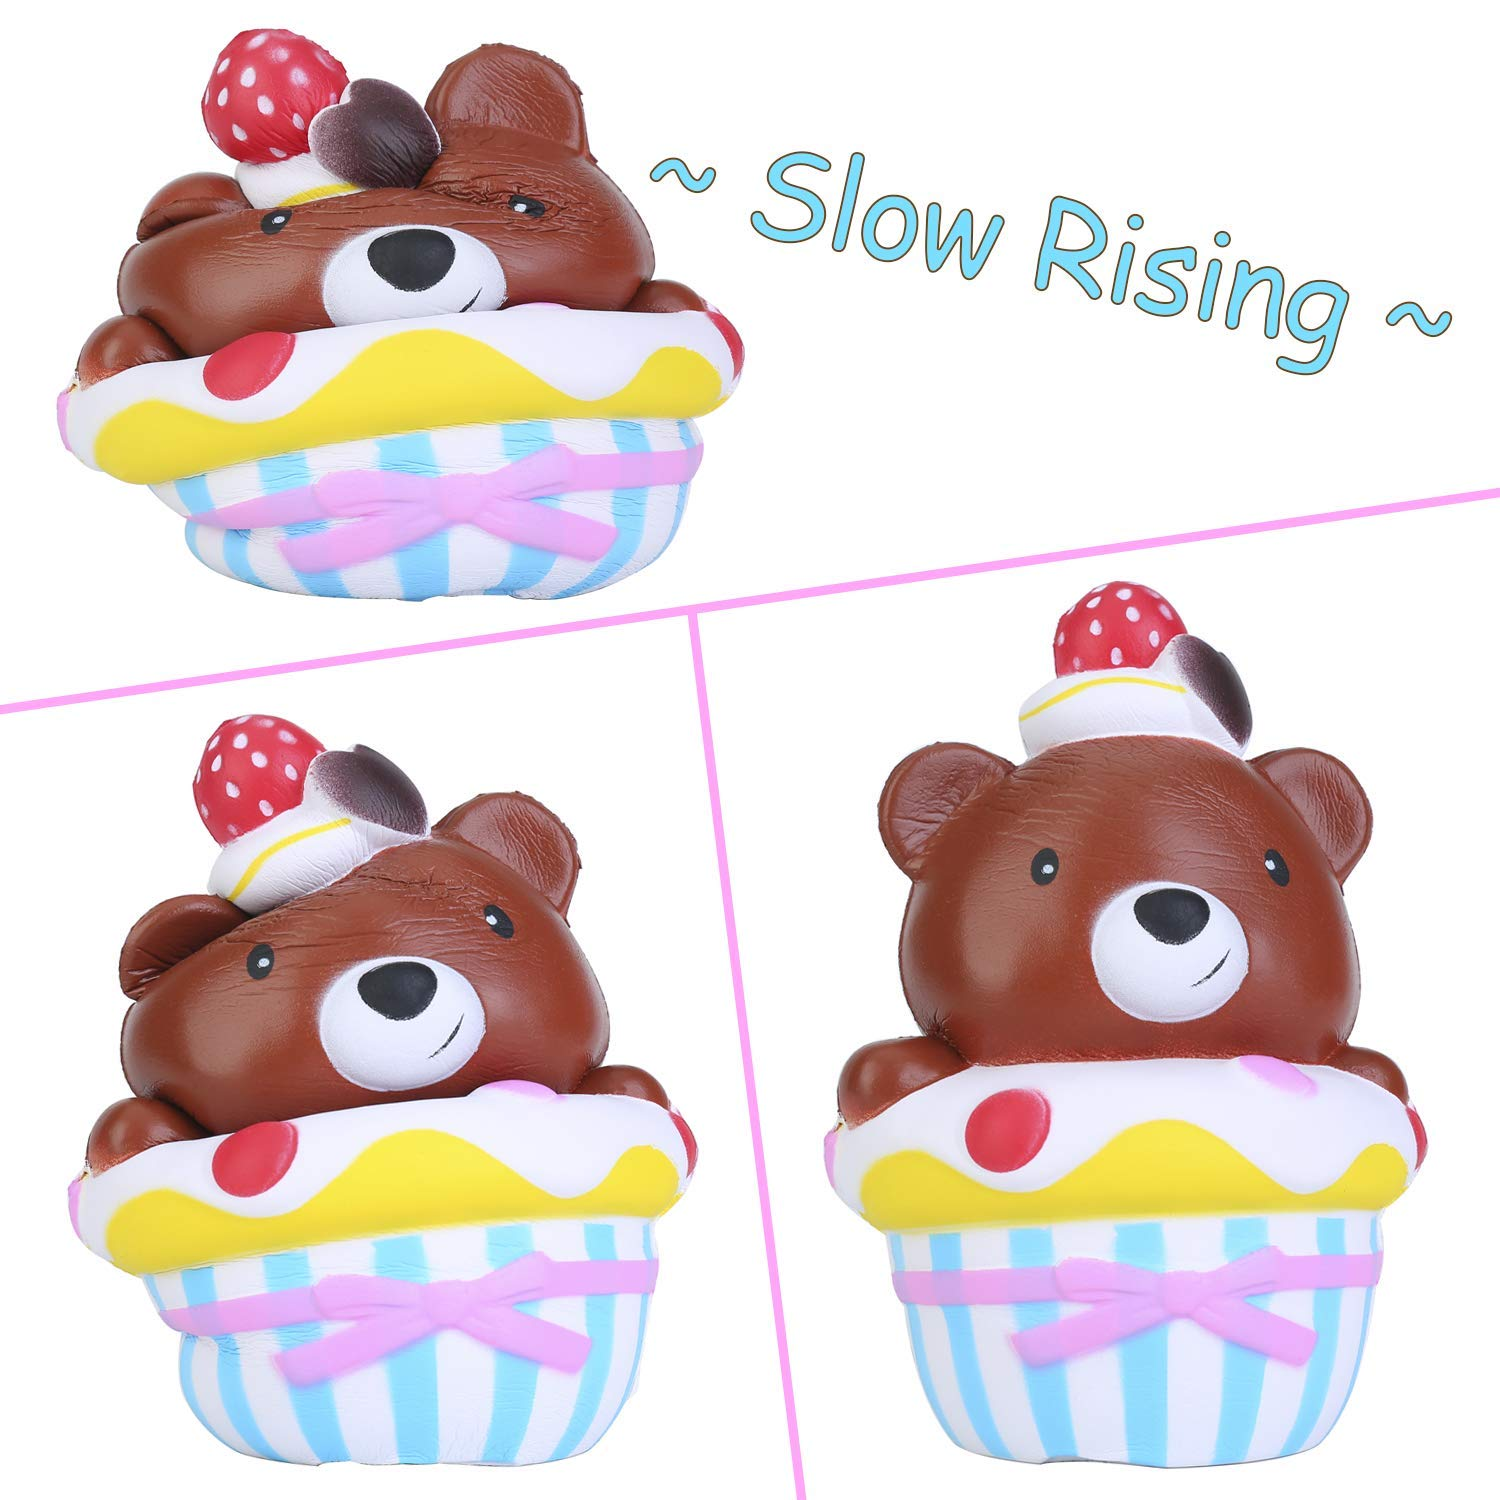 Bear Cake Squishy Panda Ice Cream Pack - Crefun NM9212 (2019 New) Slow Rising Cute Squishy Animals Squishies Food Gifts for Kid Stress Relief Toys including 2Pcs 6.7 Inch Jumbo Squishies Super Soft Cr